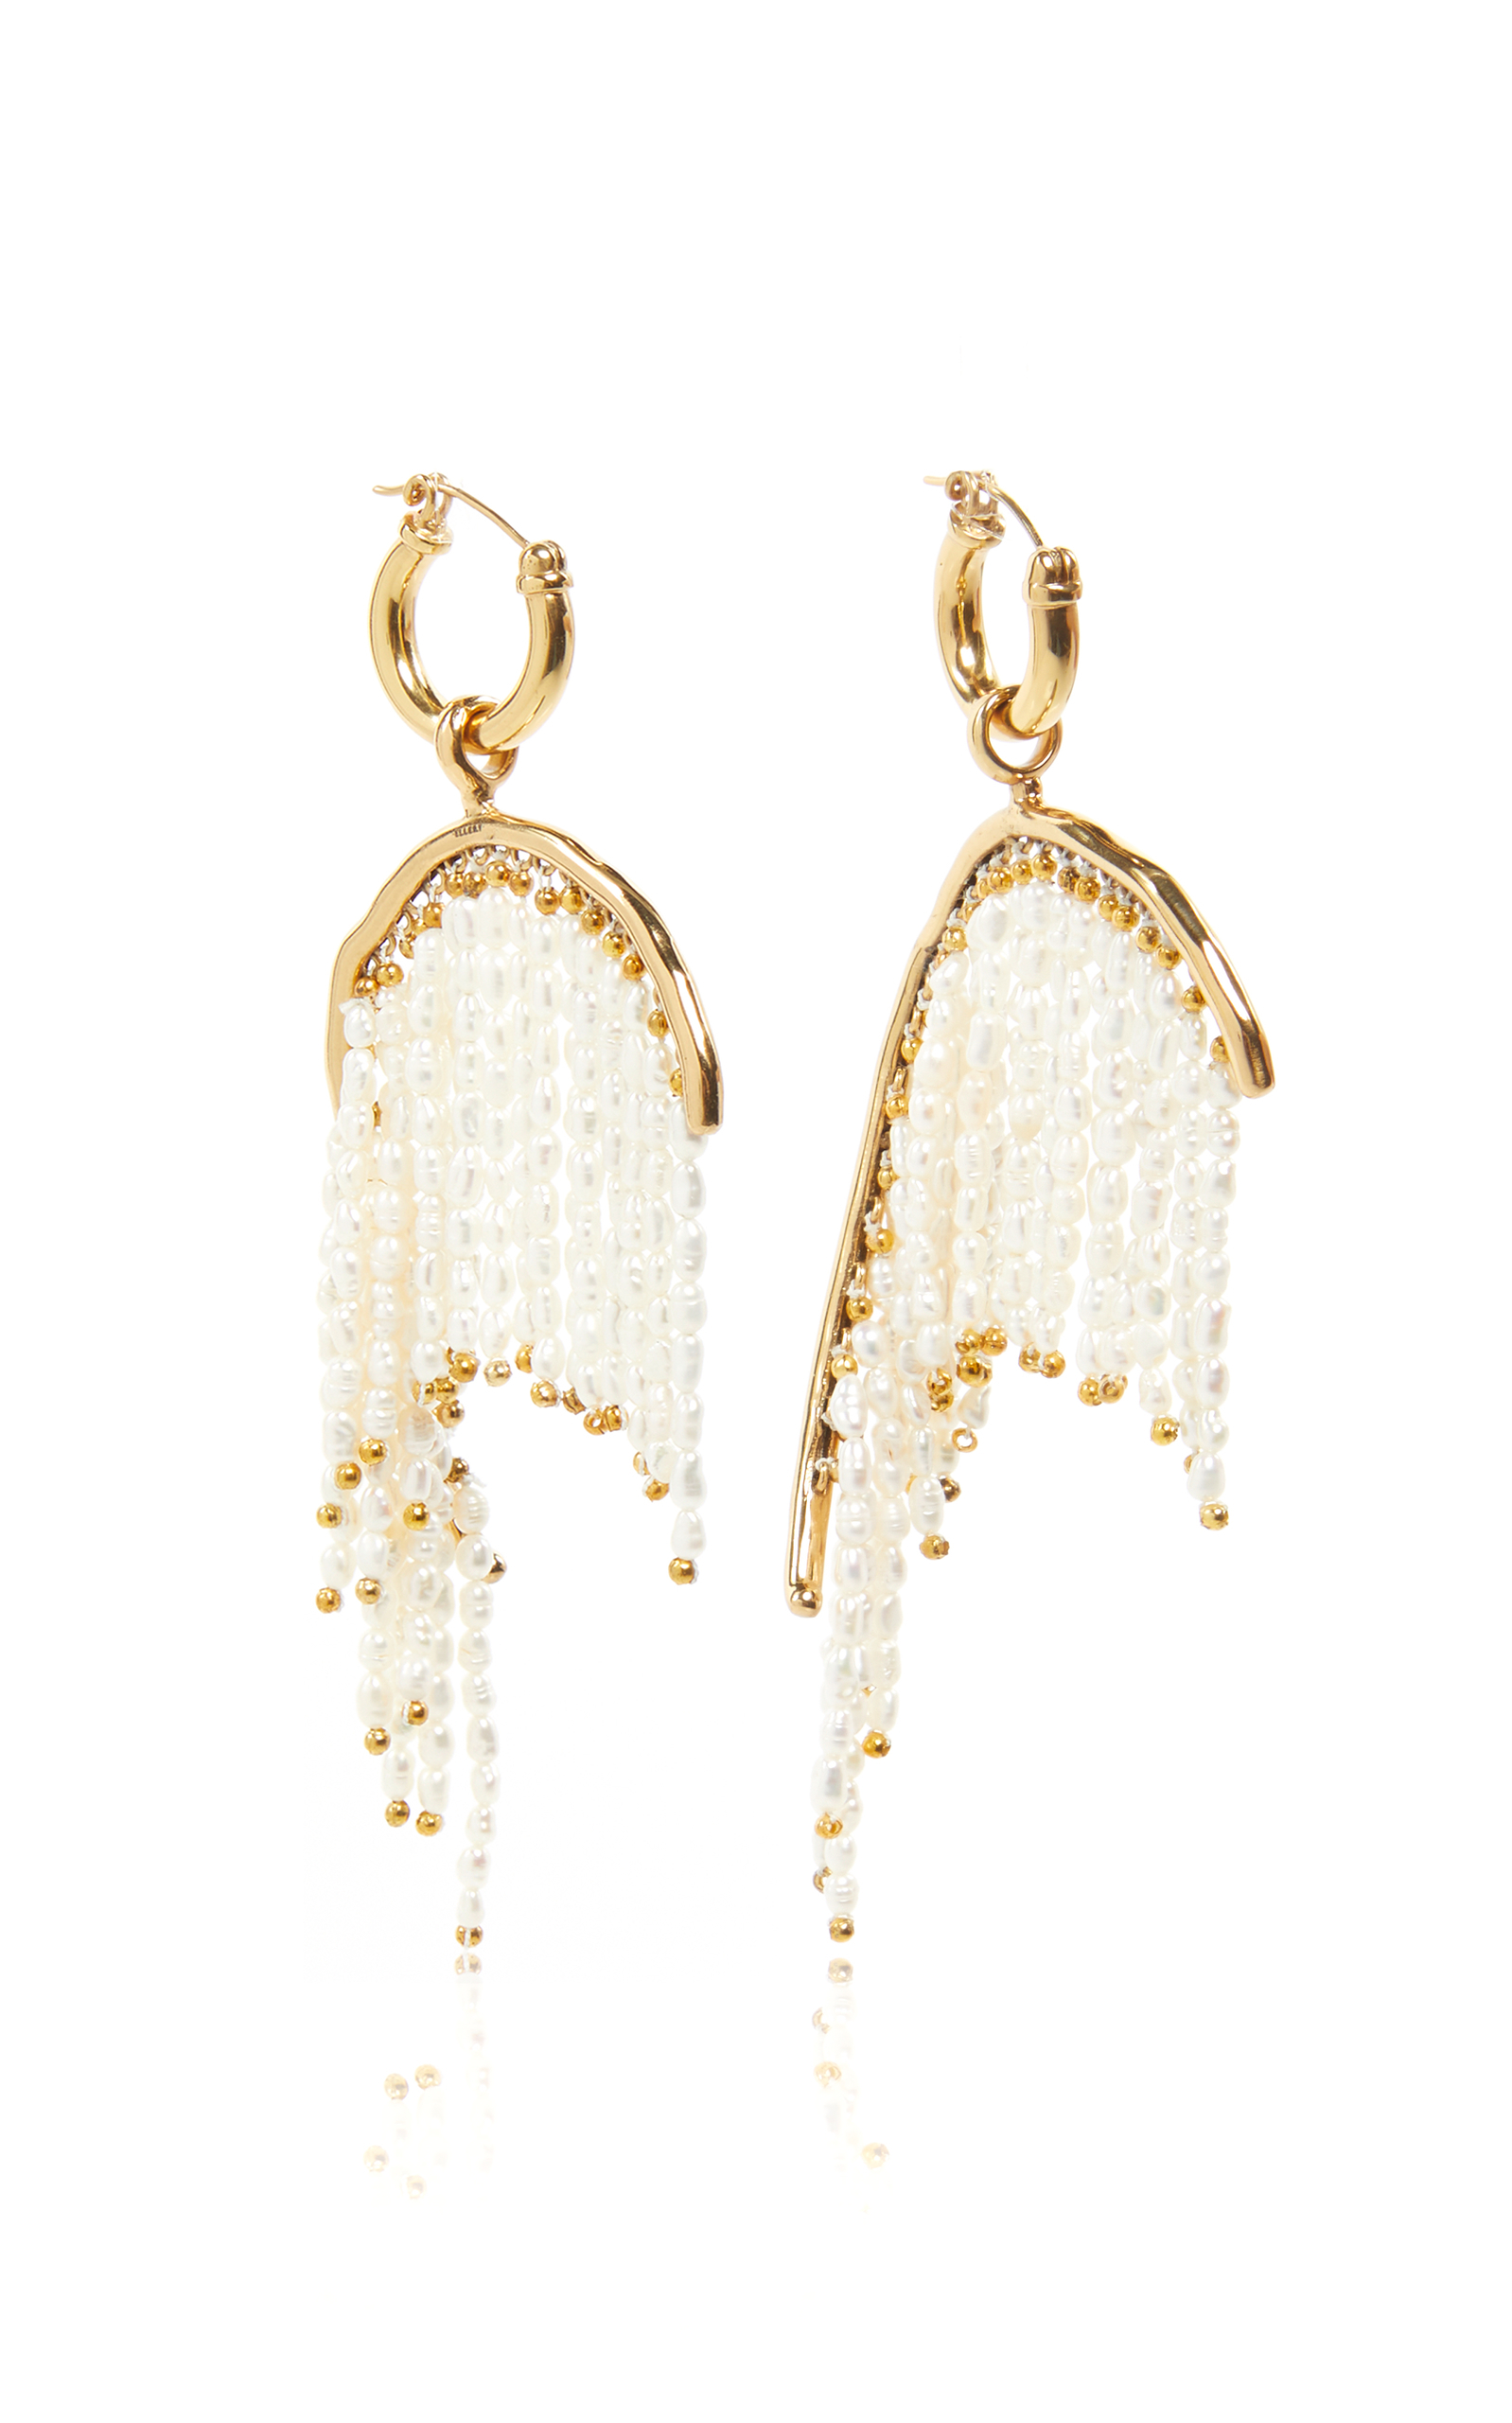 product home fringe the on earrings bali accessoires suzy again road